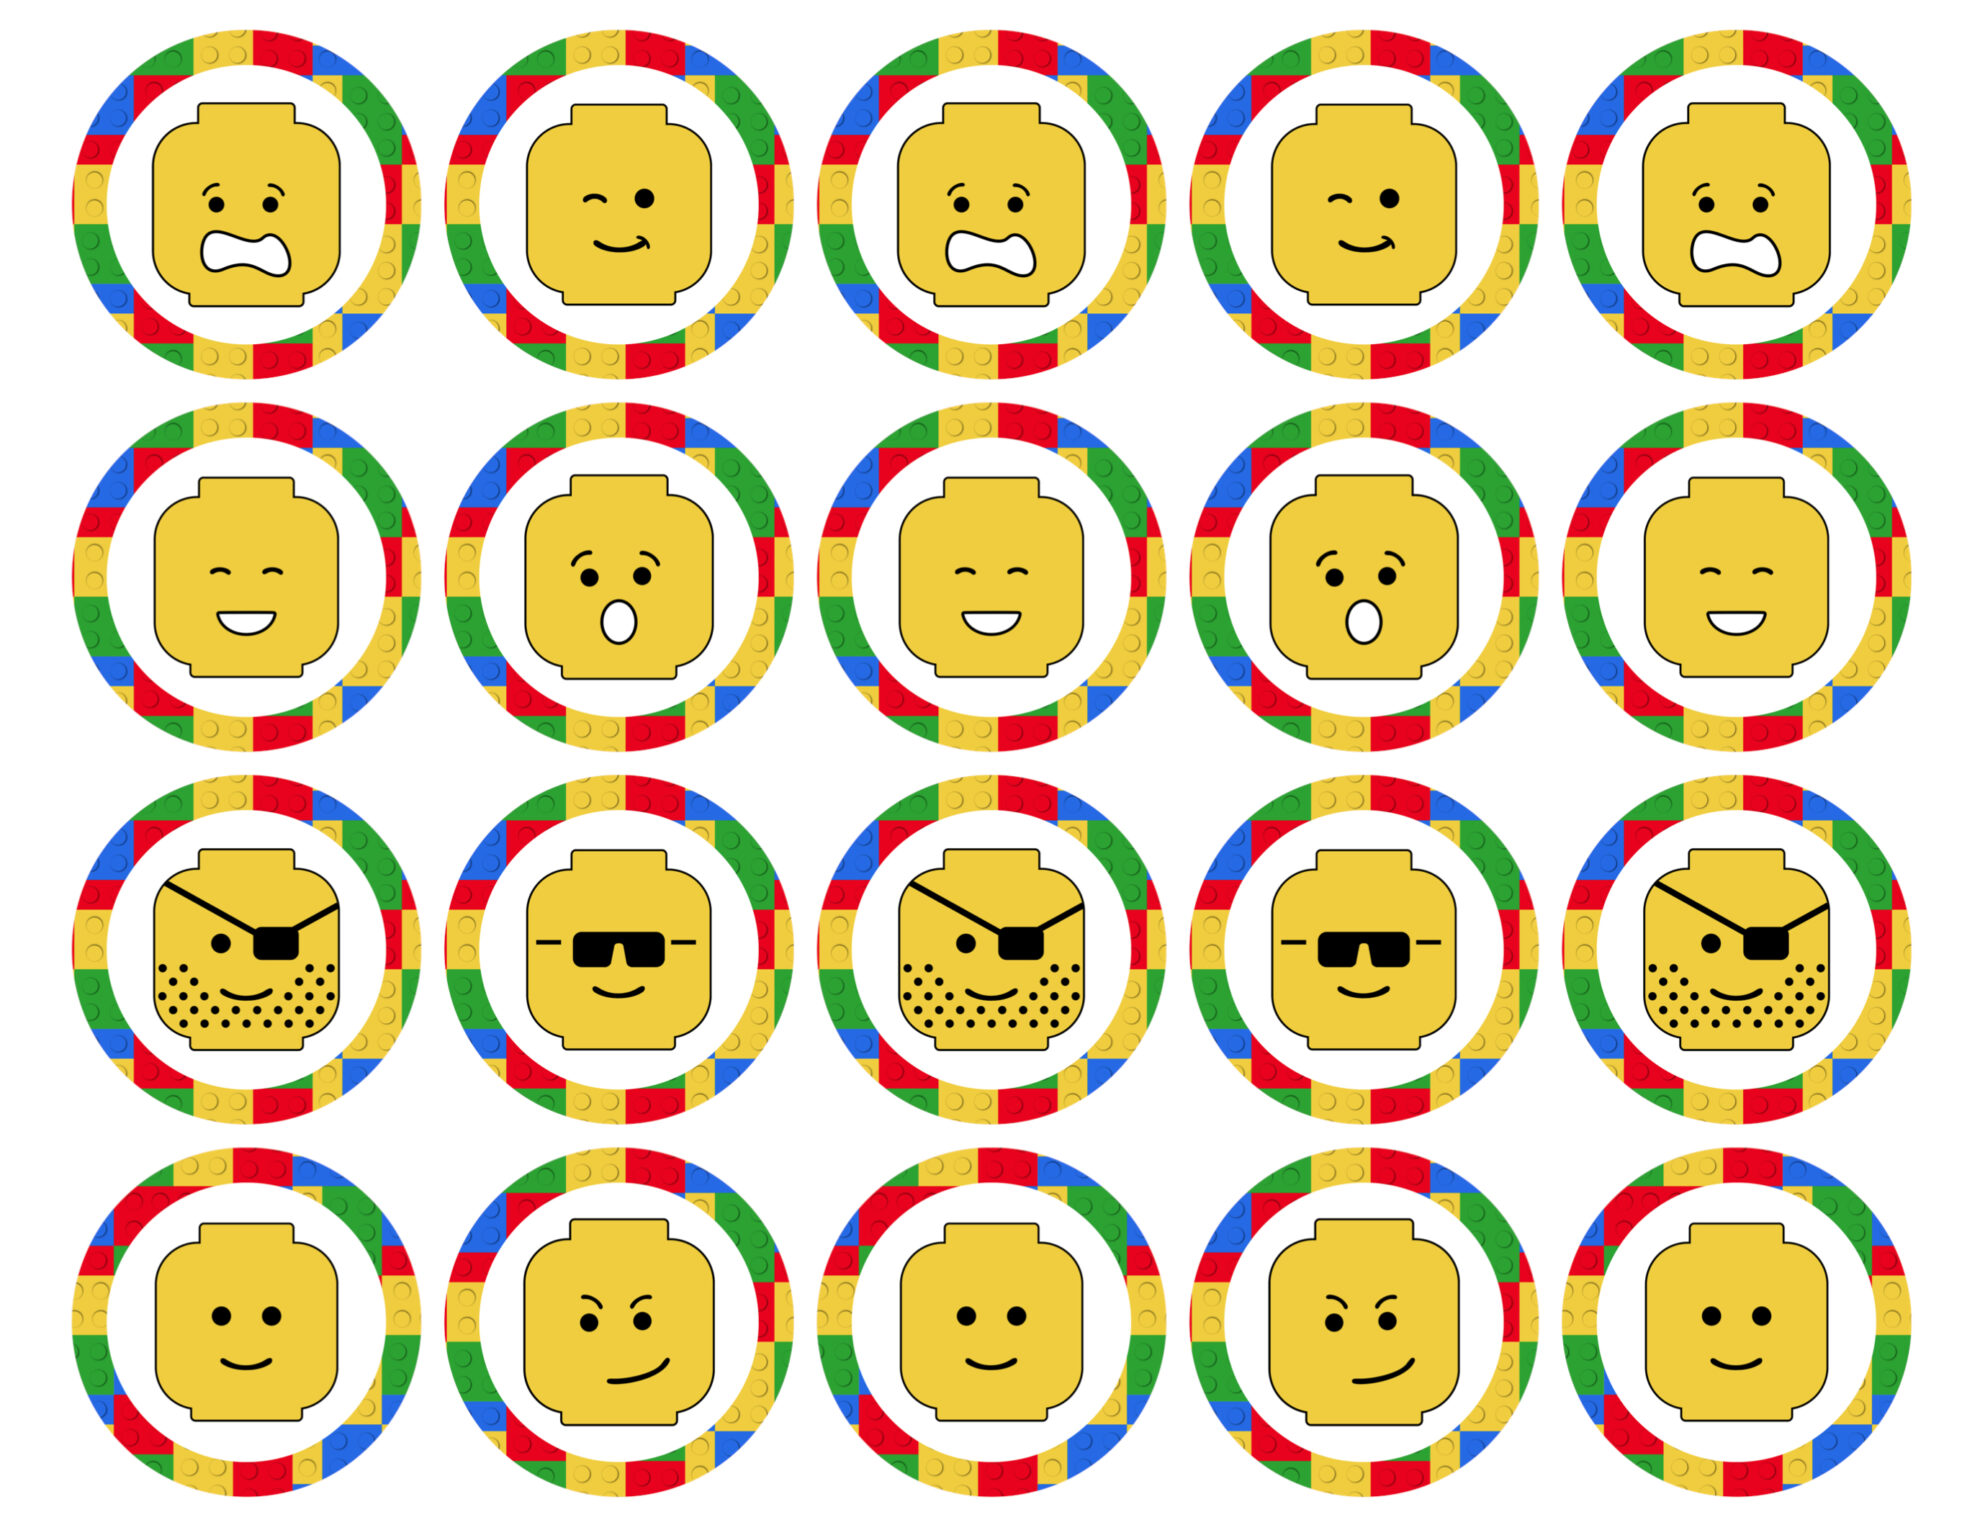 image regarding Lego Faces Printable titled Perfect Lego Birthday Get together Options No cost Printables - Paper